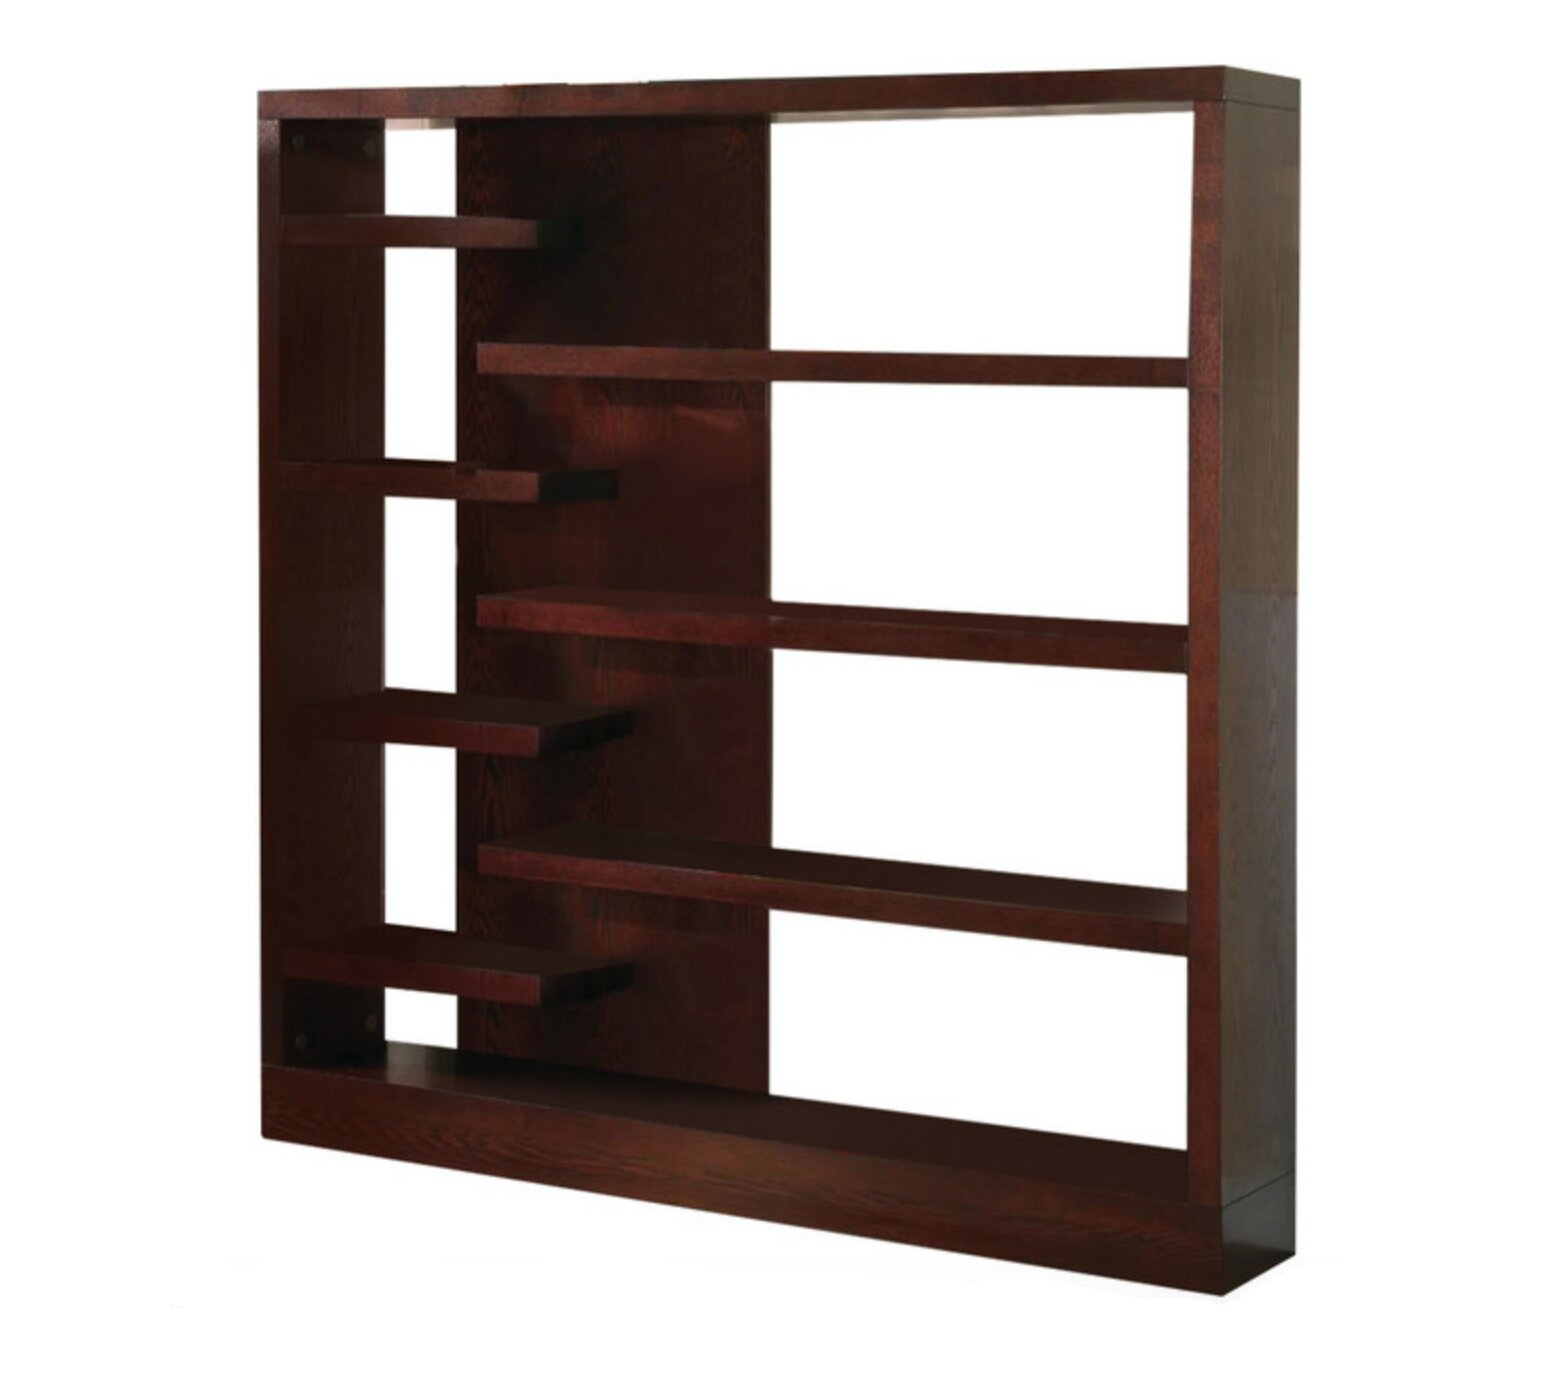 Orren Ellis Warkworth Standard Bookcase | Wayfair